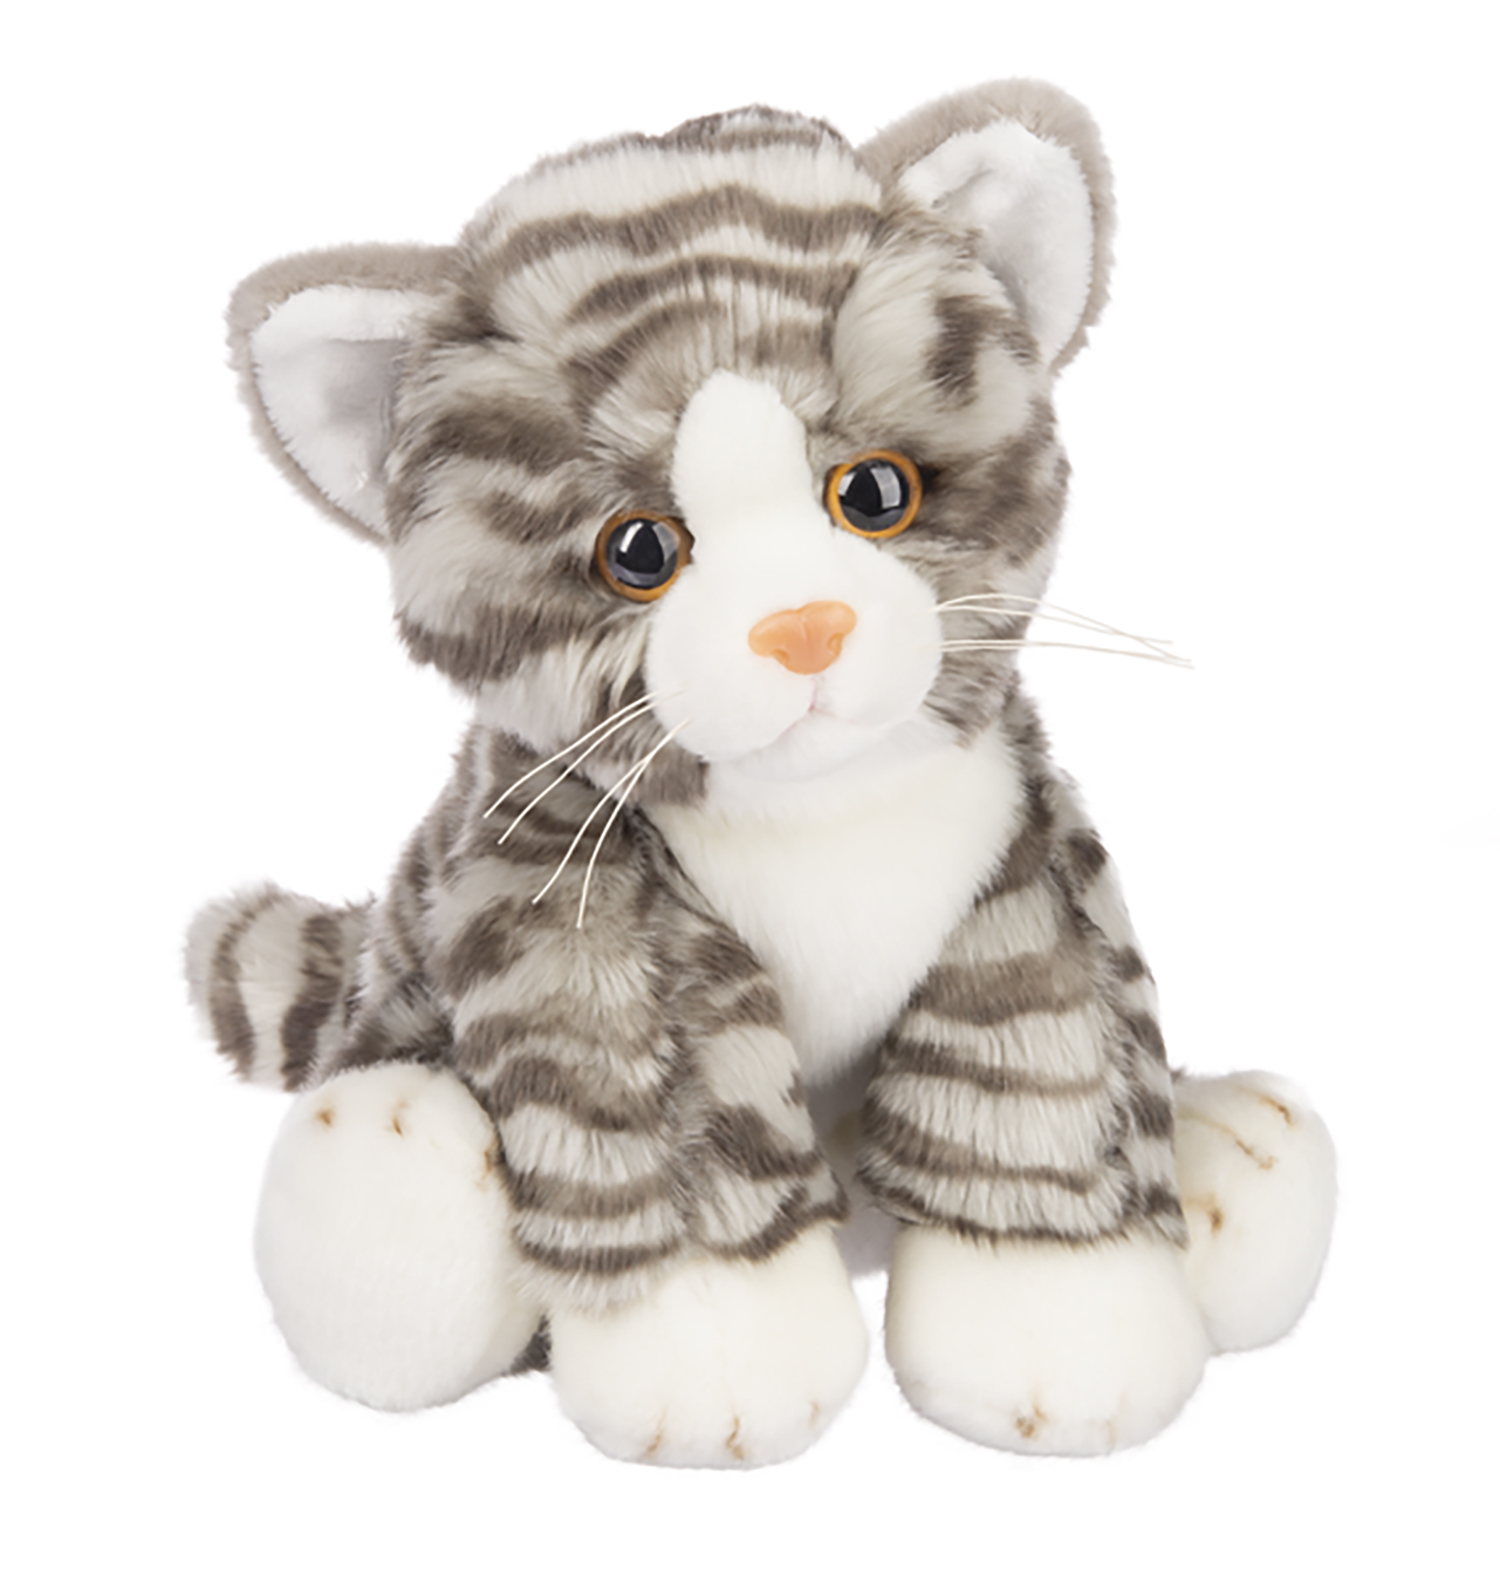 Cat Plush Toy Details About Ganz Heritage Grey Tabby Cat 12 Inch Stuffed Animal Plush Toy